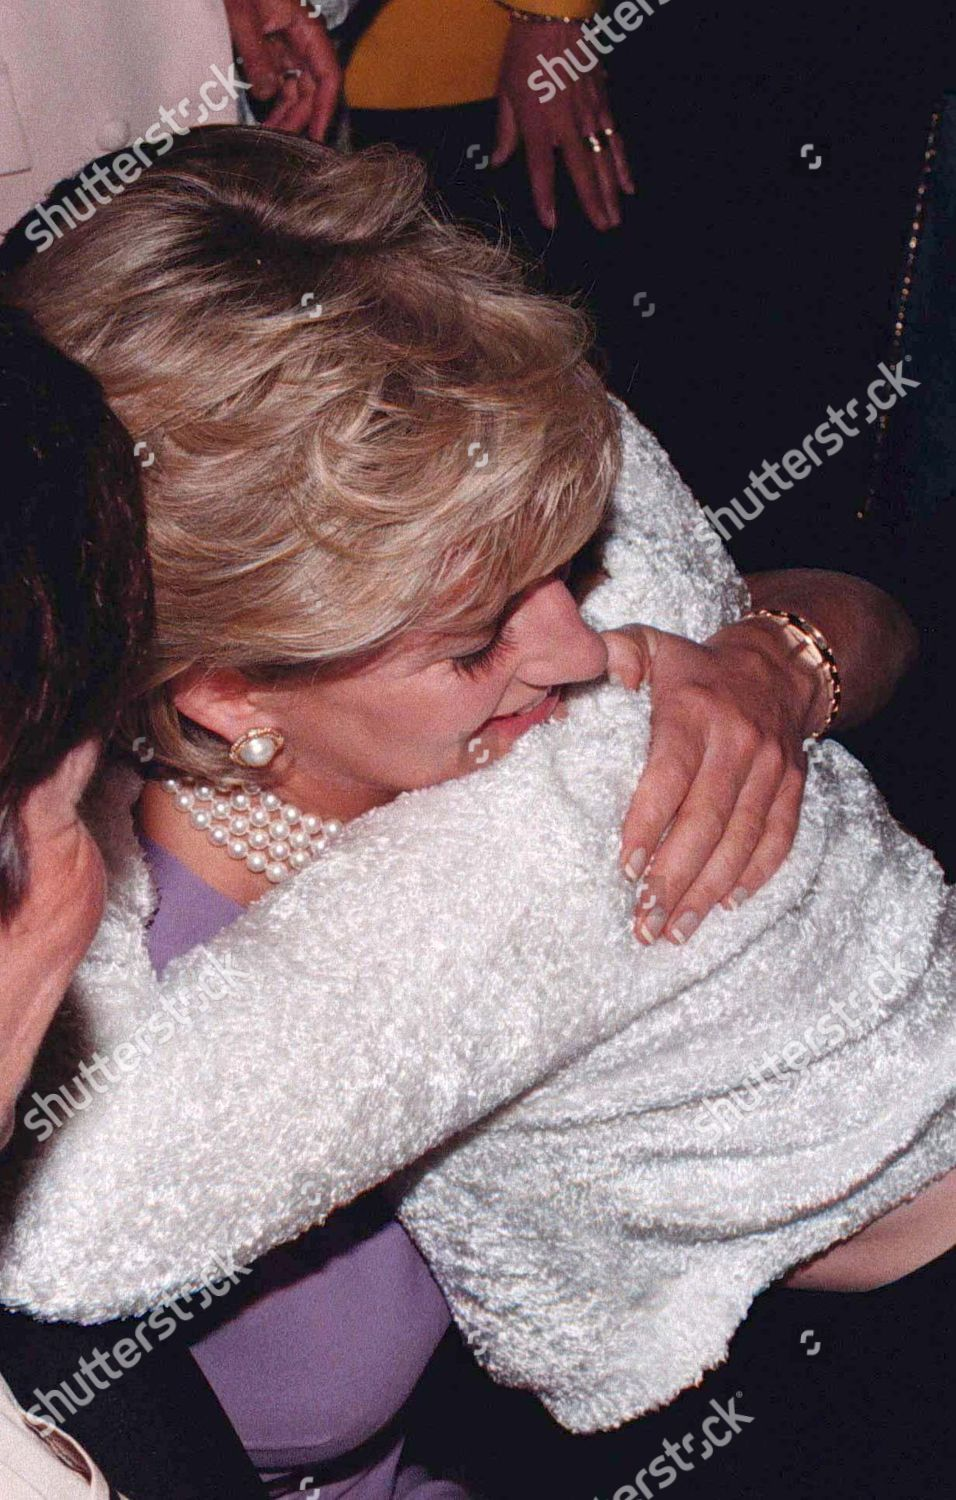 princess diana hugging 13 year old emma editorial stock photo stock image shutterstock https www shutterstock com editorial image editorial princess diana visit to australia 1996 265511af